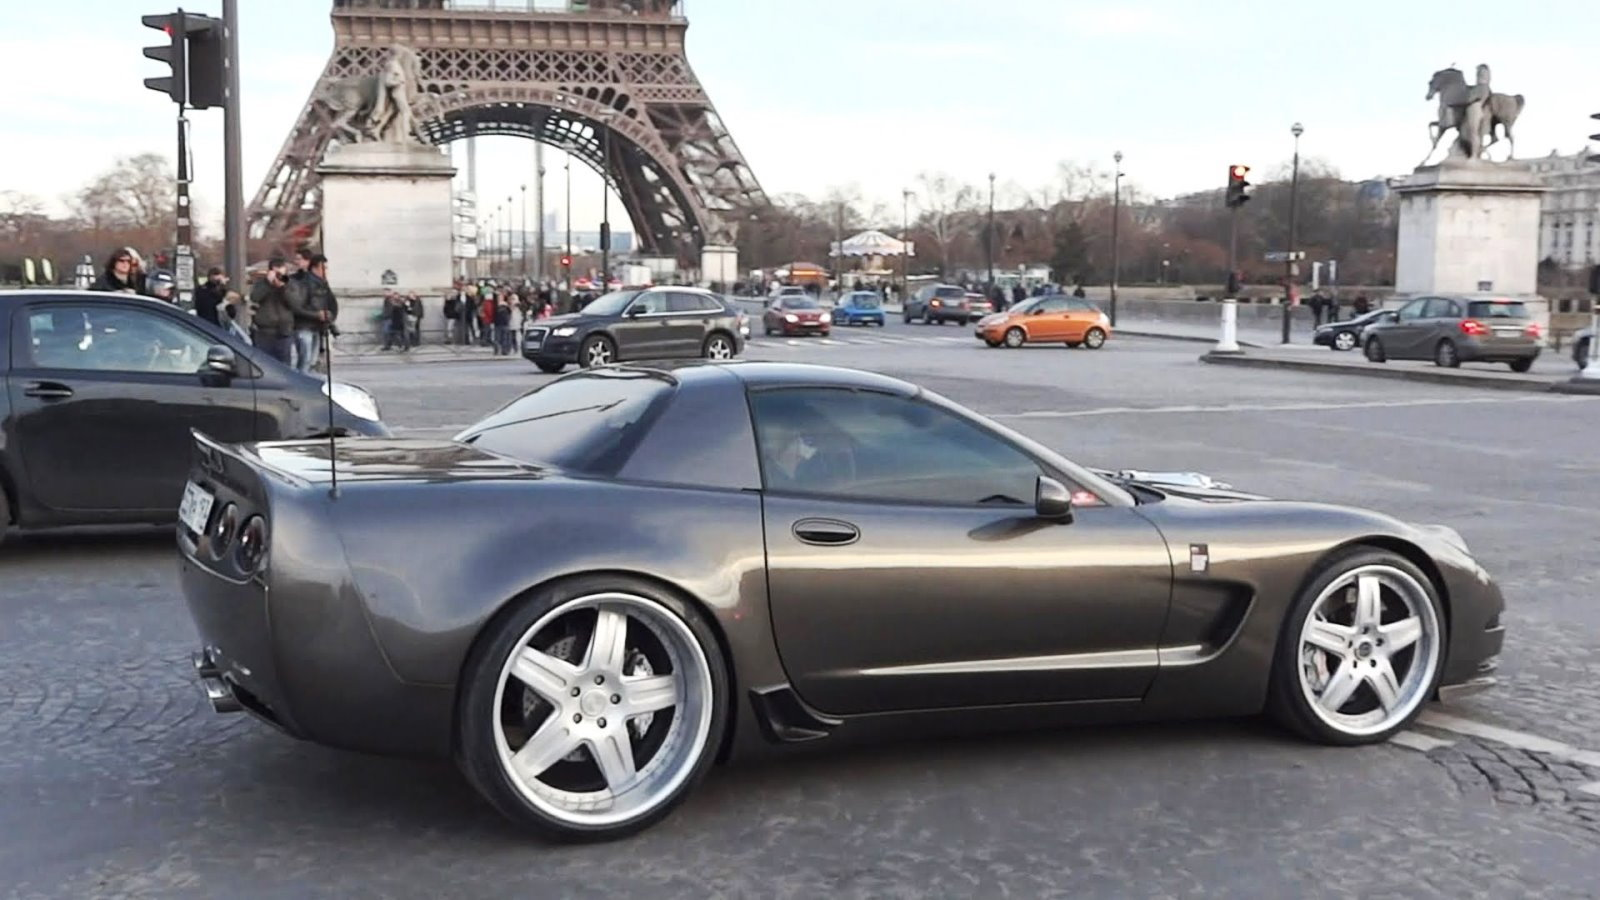 Corvette C5 Z06 in Paris